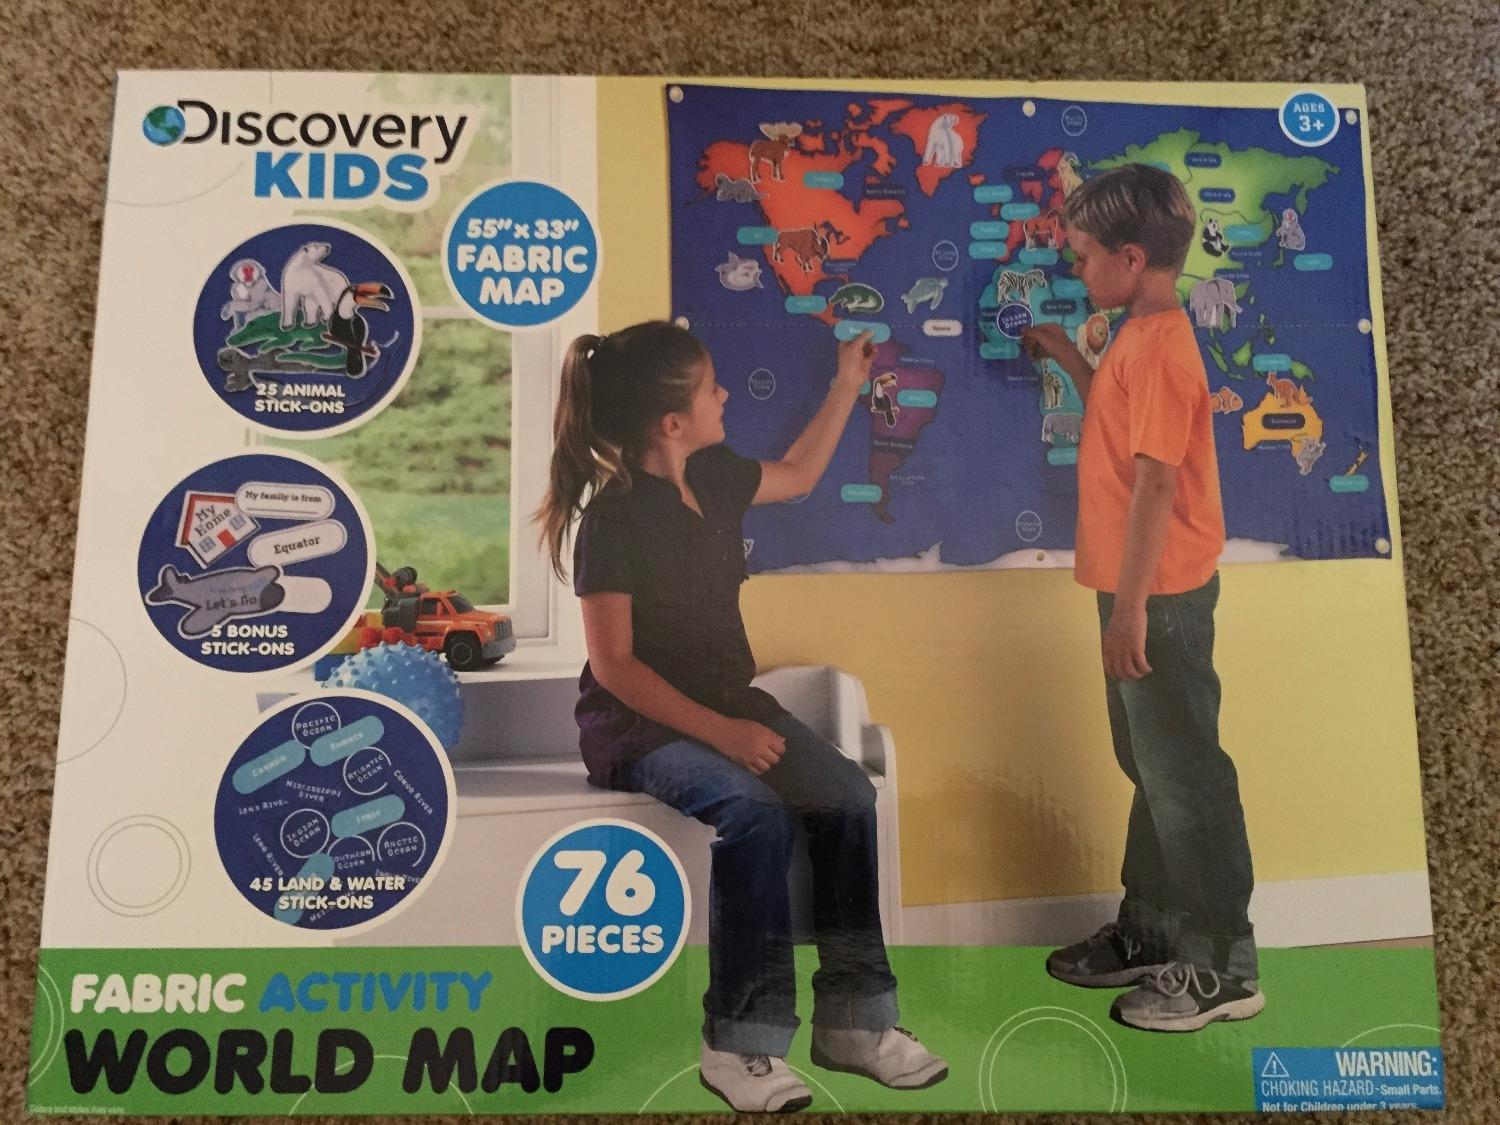 Find more new discovery kids fabric activity world map new for find more new discovery kids fabric activity world map new for sale at up to 90 off gumiabroncs Image collections